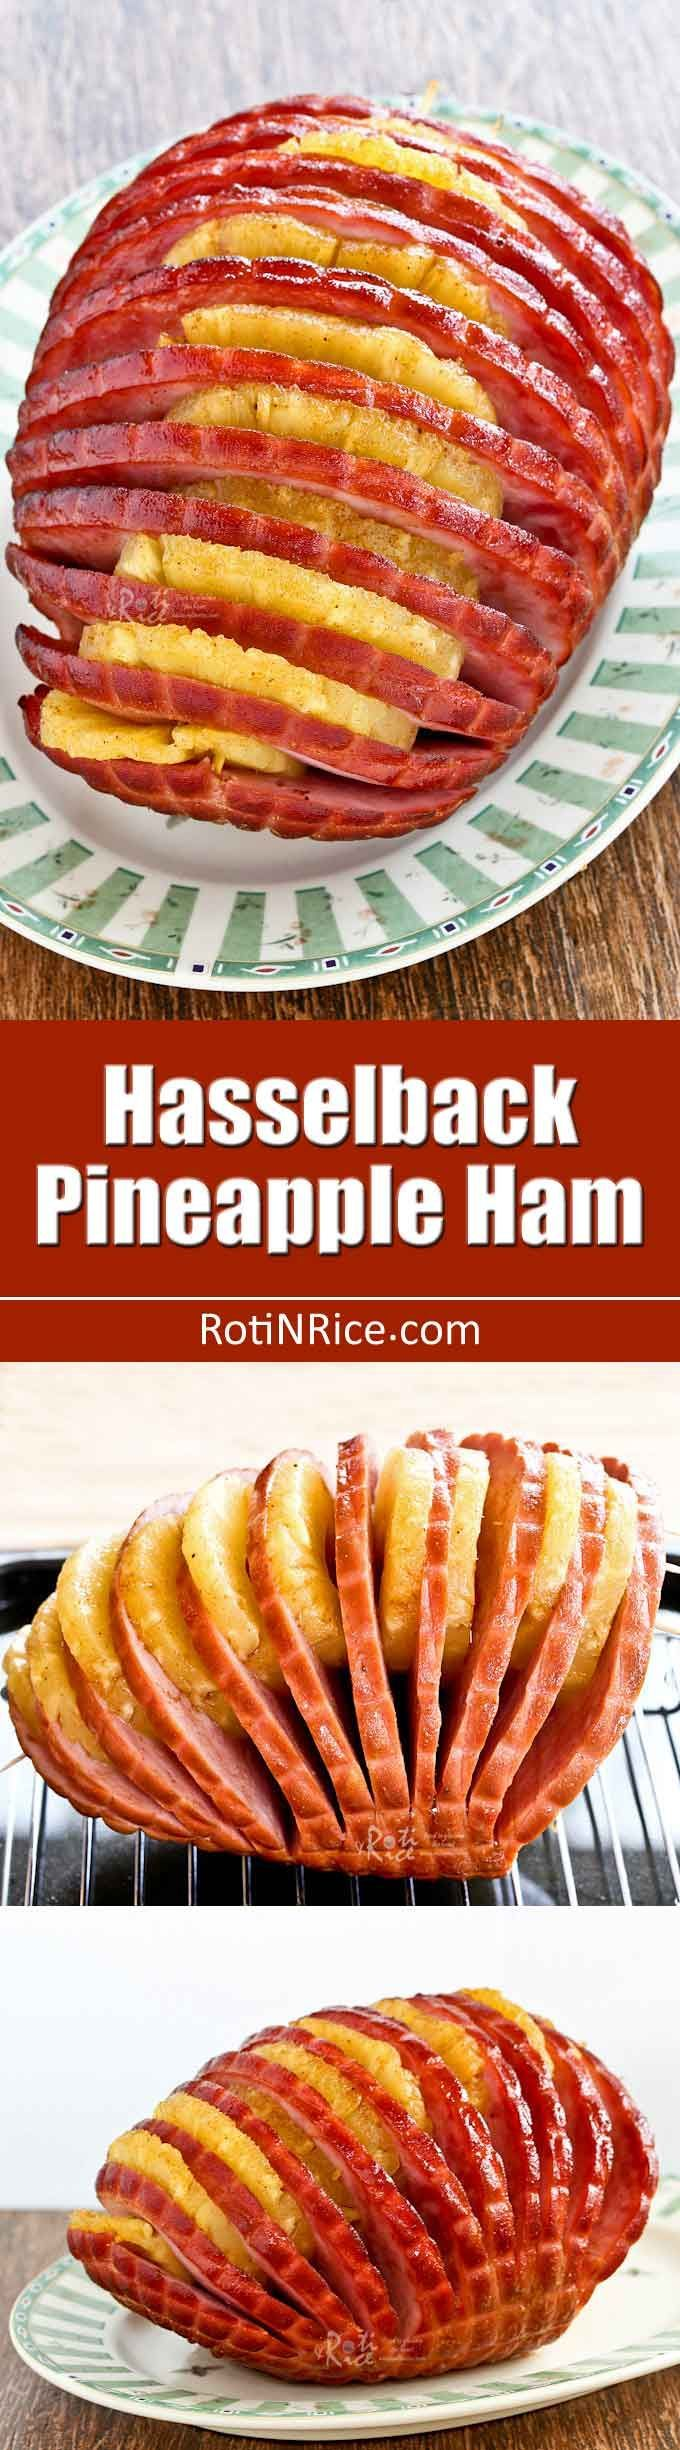 This boneless Hasselback Pineapple Ham is perfect for a smaller family or crowd. Just as delicious and much easier and faster to prepare. | RotiNRice.com